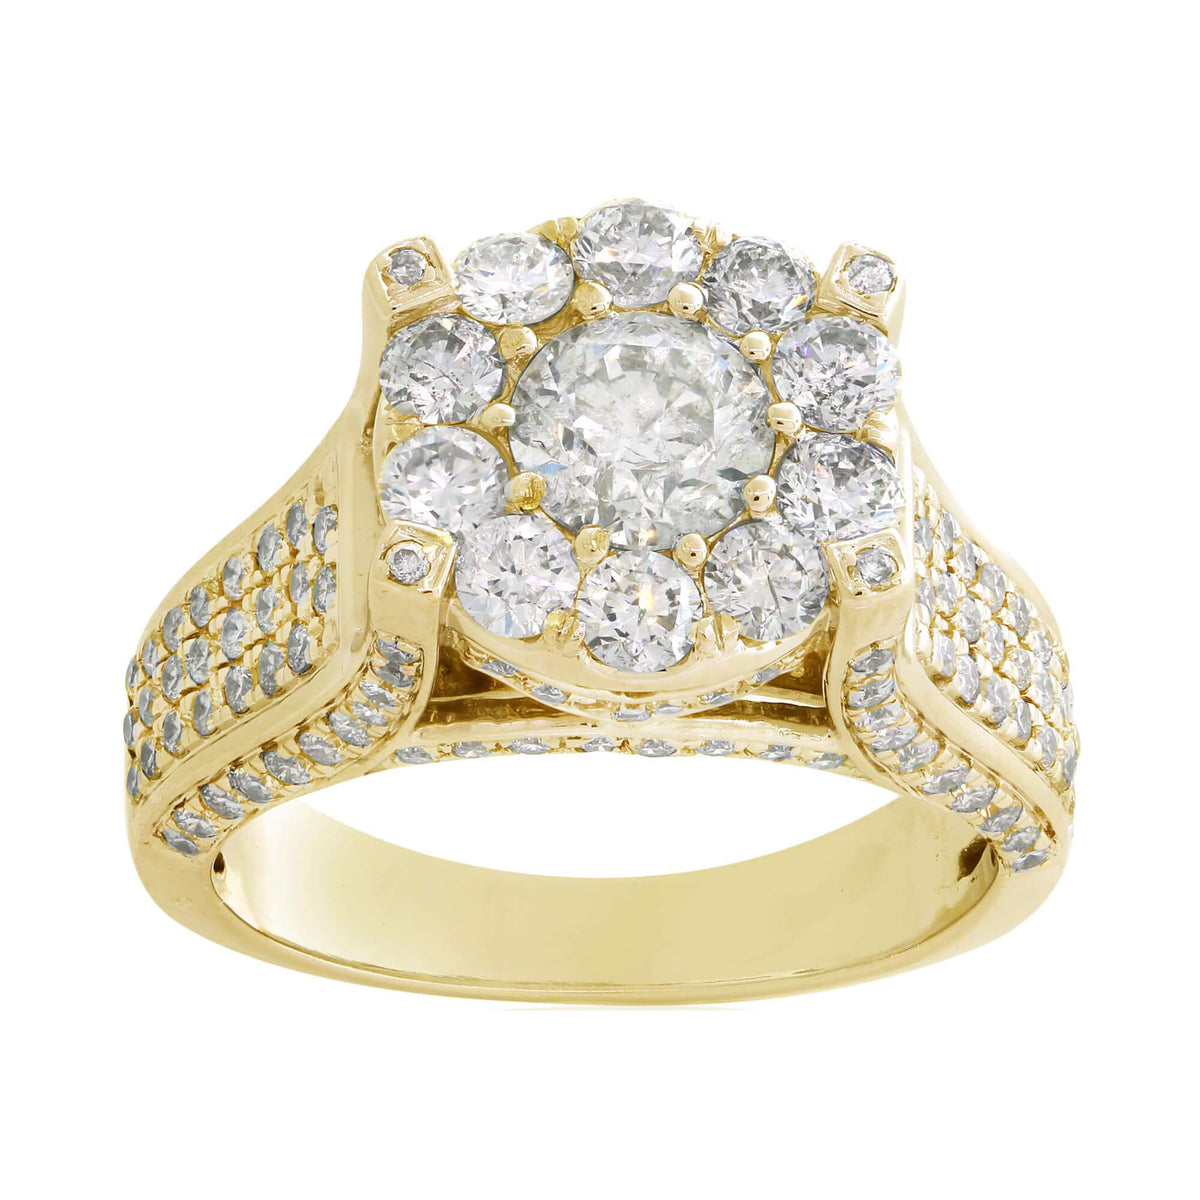 Miché Collection 2.26 Ct Diamond Halo Cluster Engagement Ring Set in 14k Gold